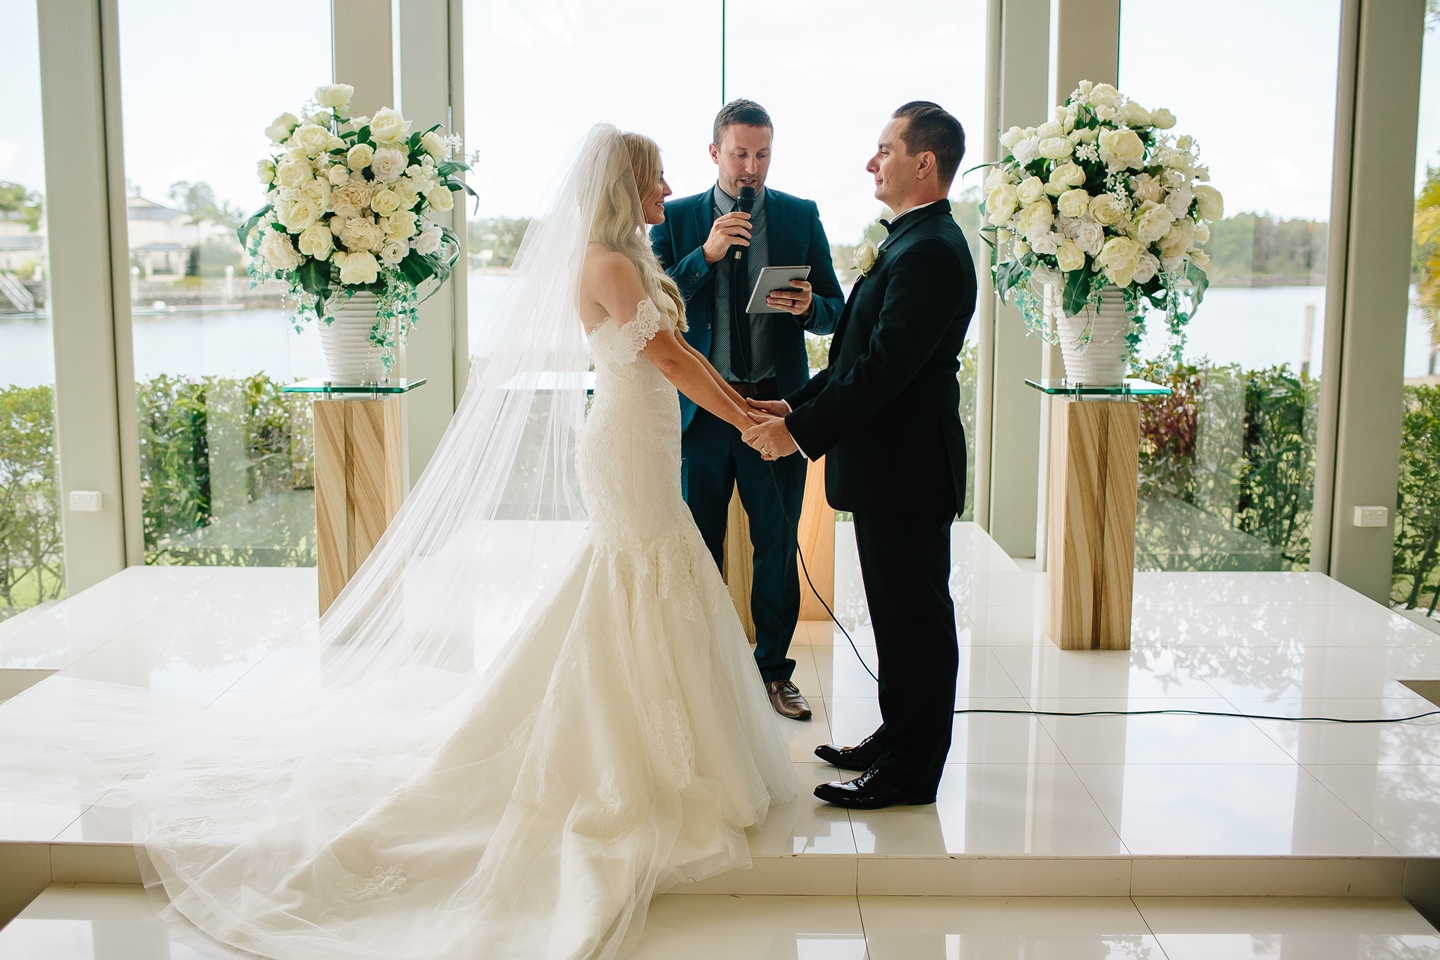 Bec & Callum Real Wedding Ceremony- #ceremony #ceremonyideas #alter #wedding #weddingideas